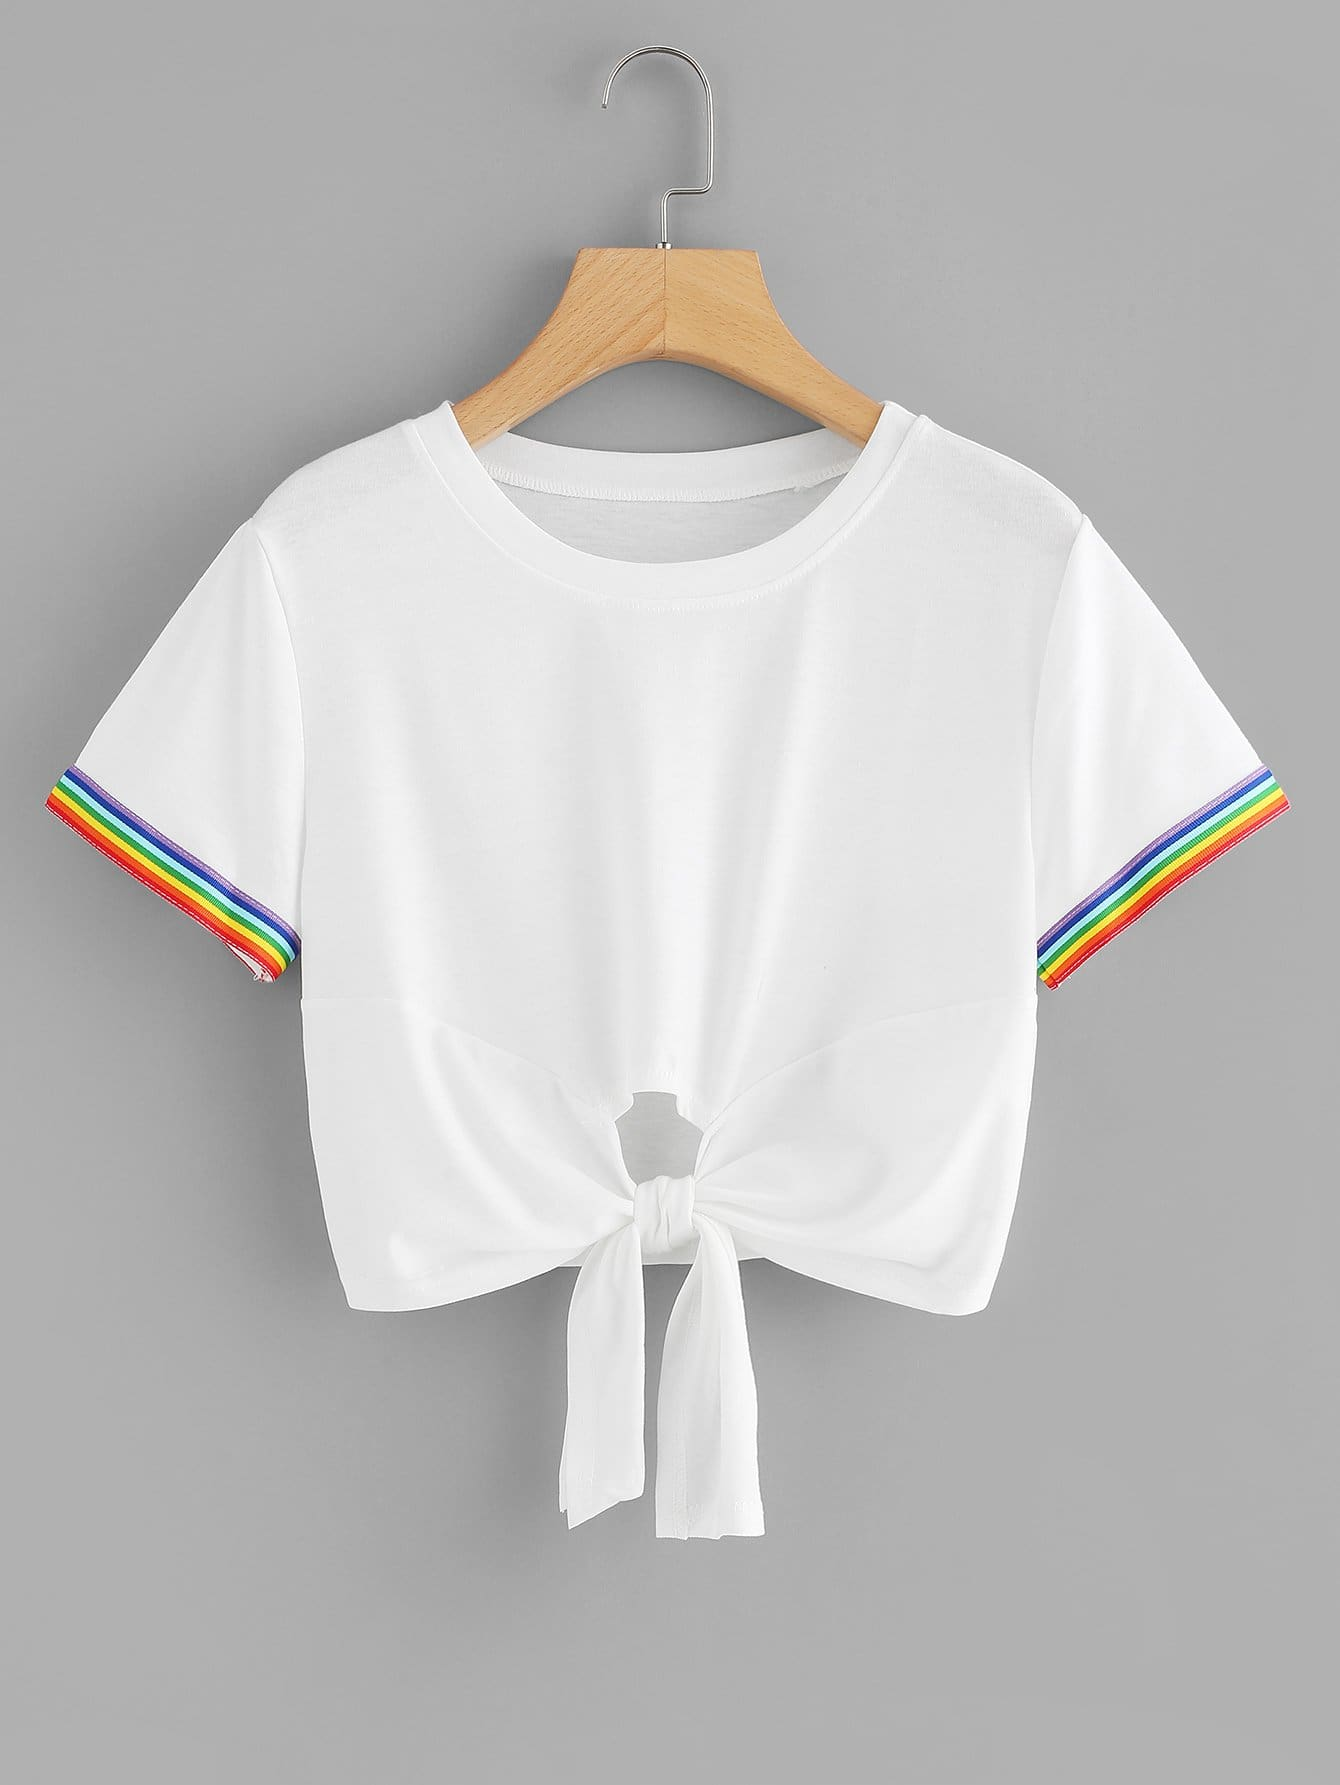 Knot Front Crop Tee knot front tee